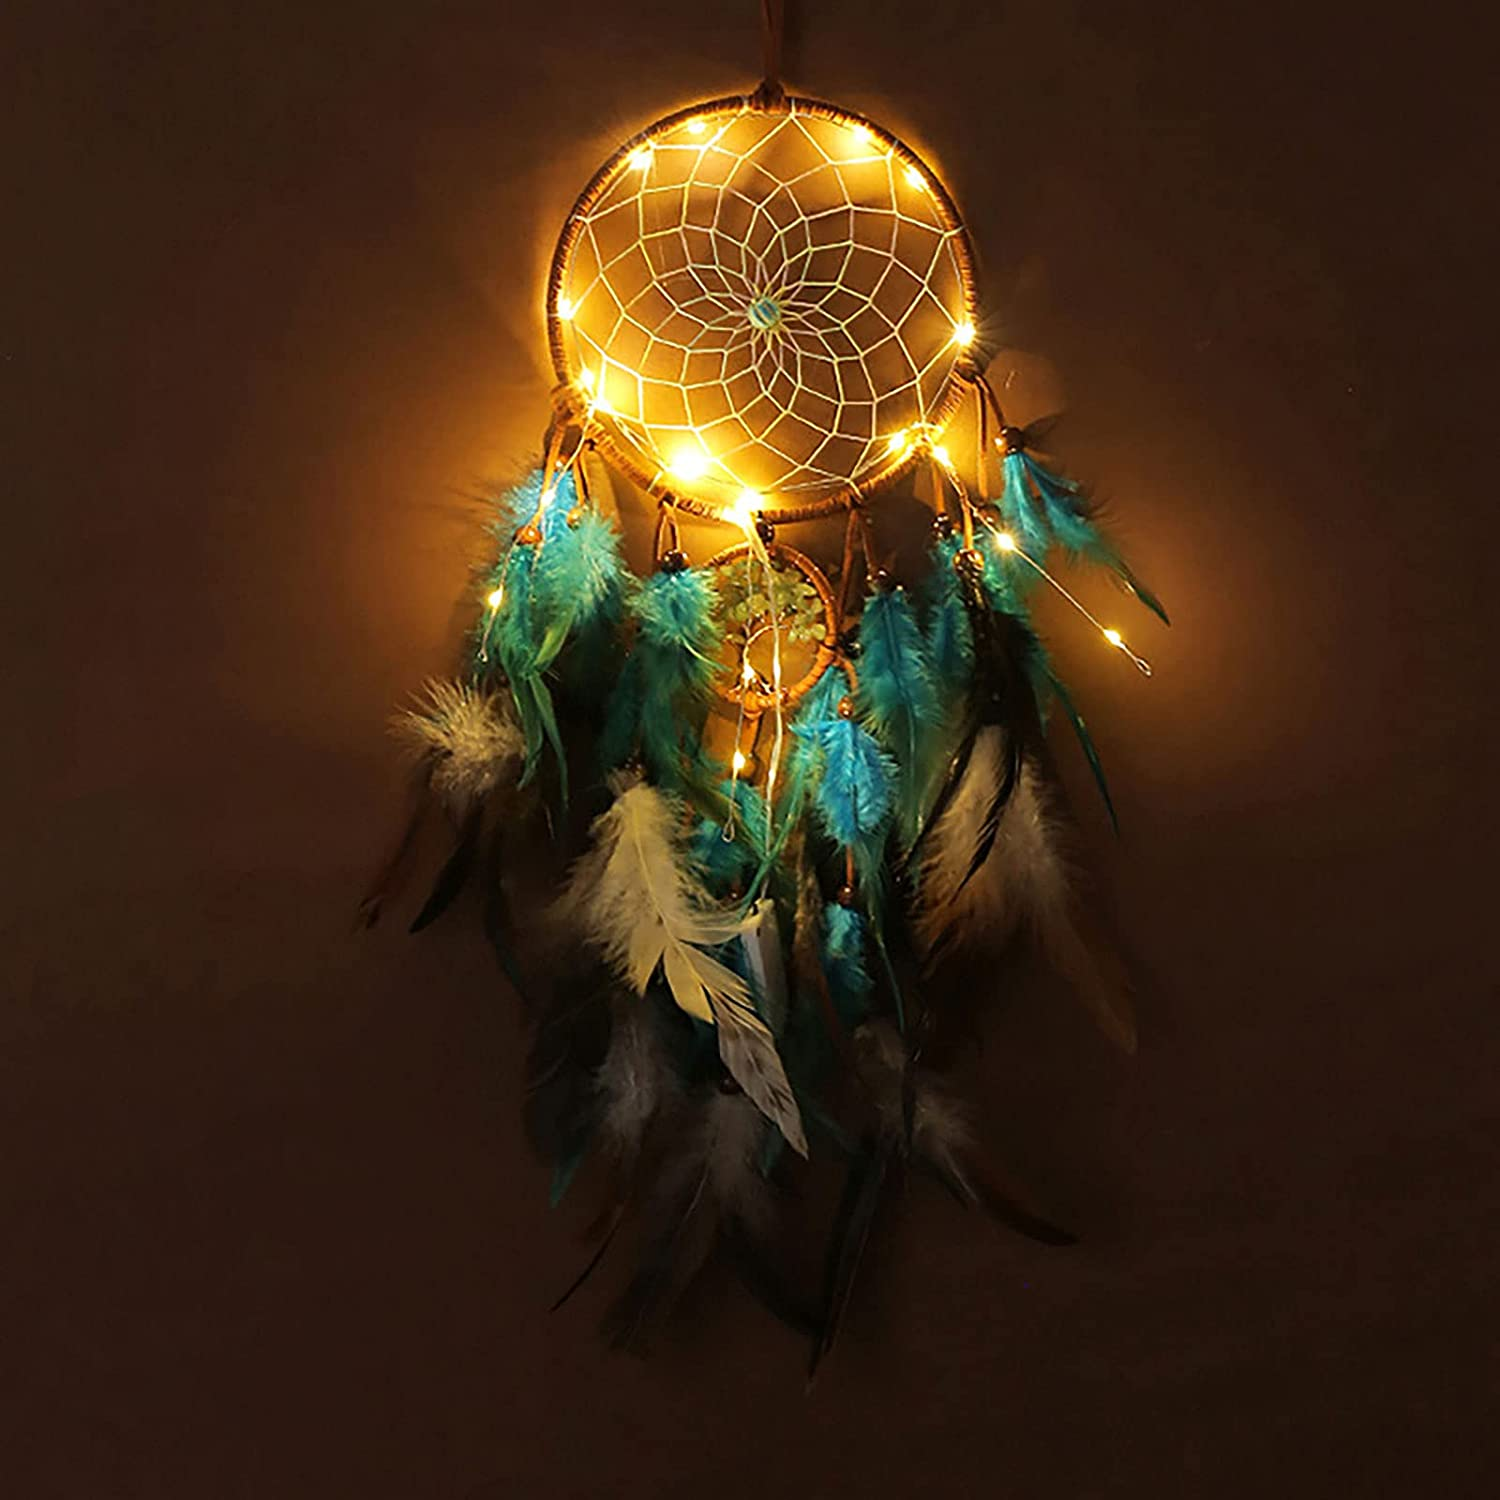 Cutefiy Dream Catchers with Lights for Bedroom Wall Decor, Handmade Native American Retro Style Tree of Life Colorful Feather Dream Catchers Gift for Home Hanging Decor Ornaments Craft, 23.62